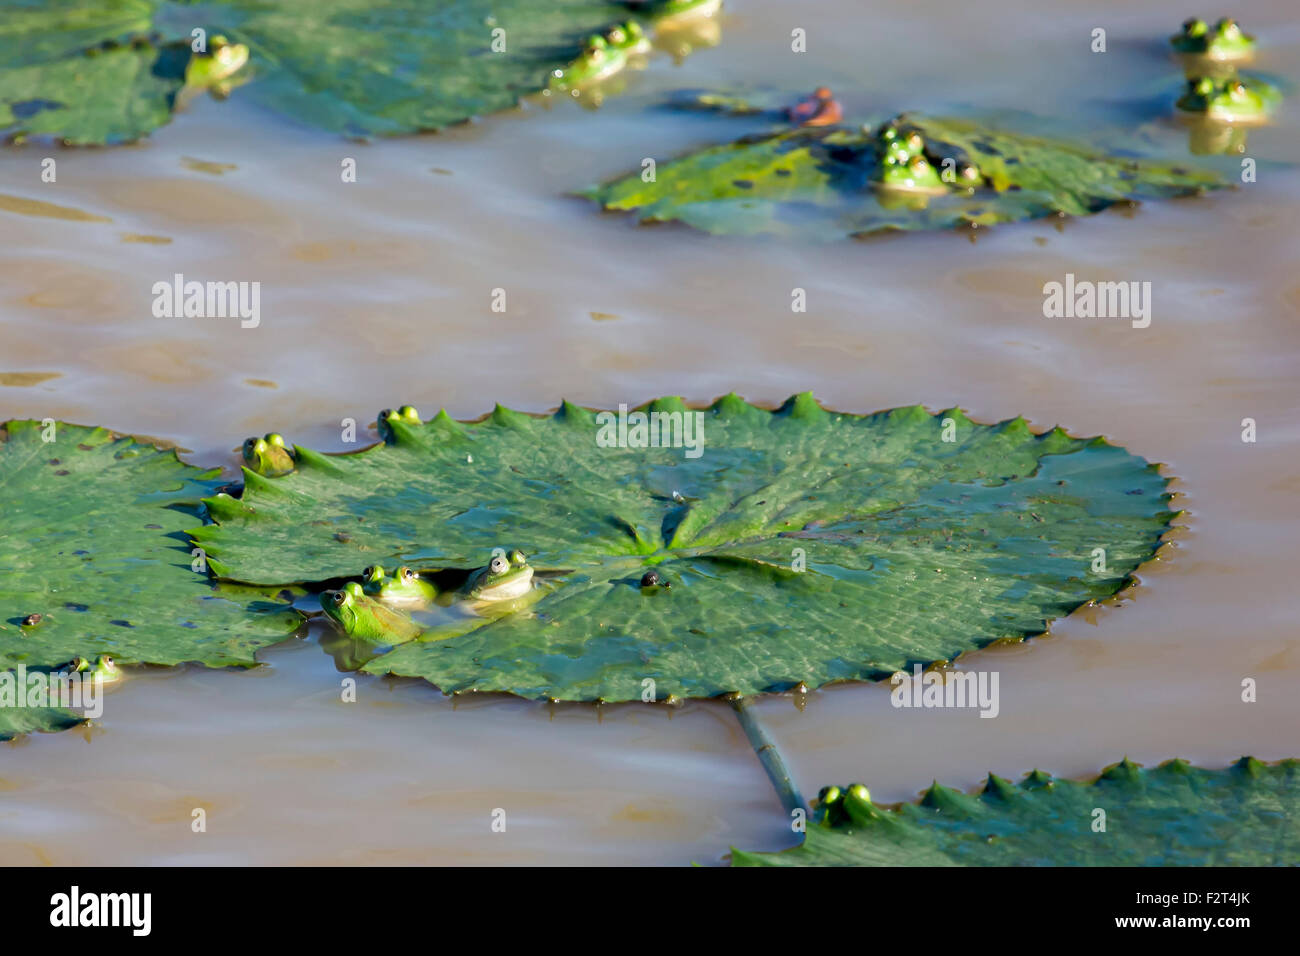 Green frogs hiding in lily pads - Stock Image